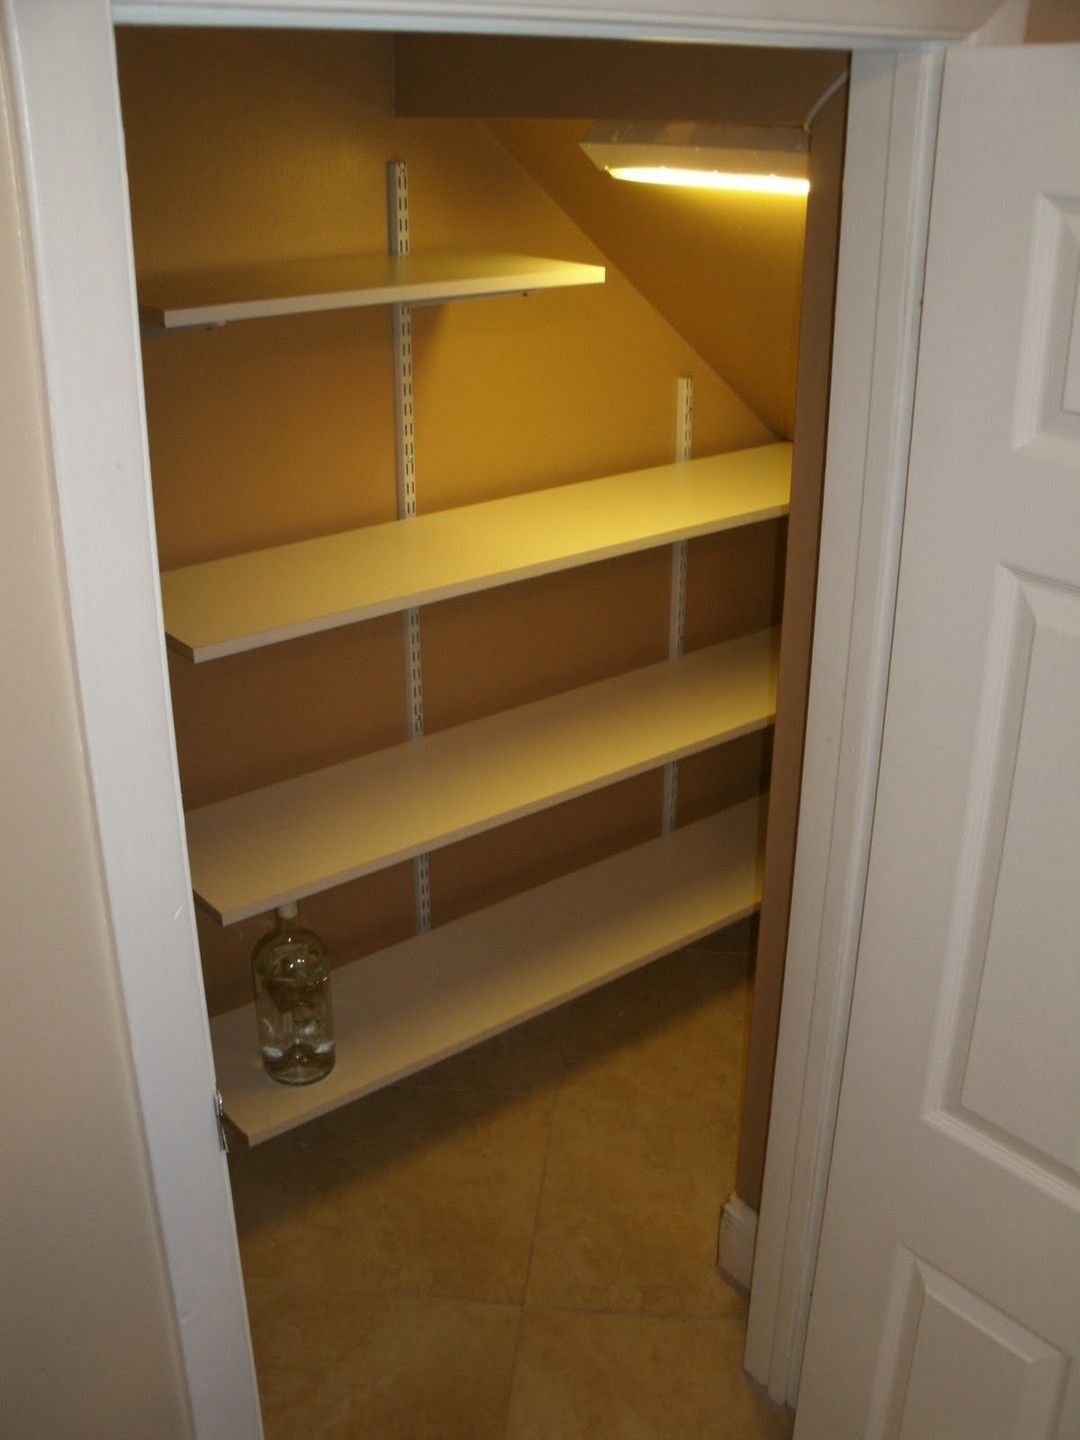 91 Wine Racks For Small Spaces By Letshide In 2020 Under Stairs Cupboard Closet Under Stairs Under Basement Stairs